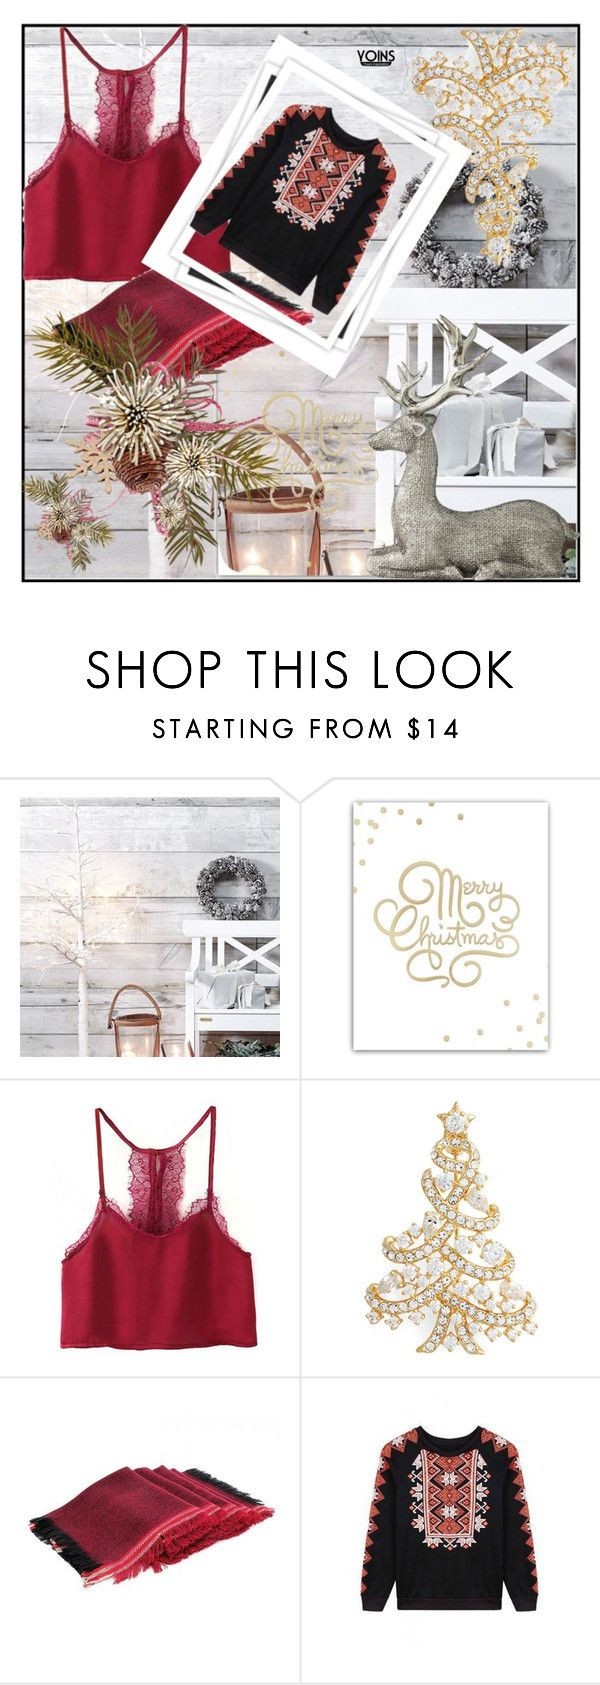 """""""Yoins #6/2"""" by soofficial87 ❤ liked on Polyvore featuring SS Print Shop, Nadri, GALA, Lene Bjerre, yoins, yoinscollection and loveyoins"""